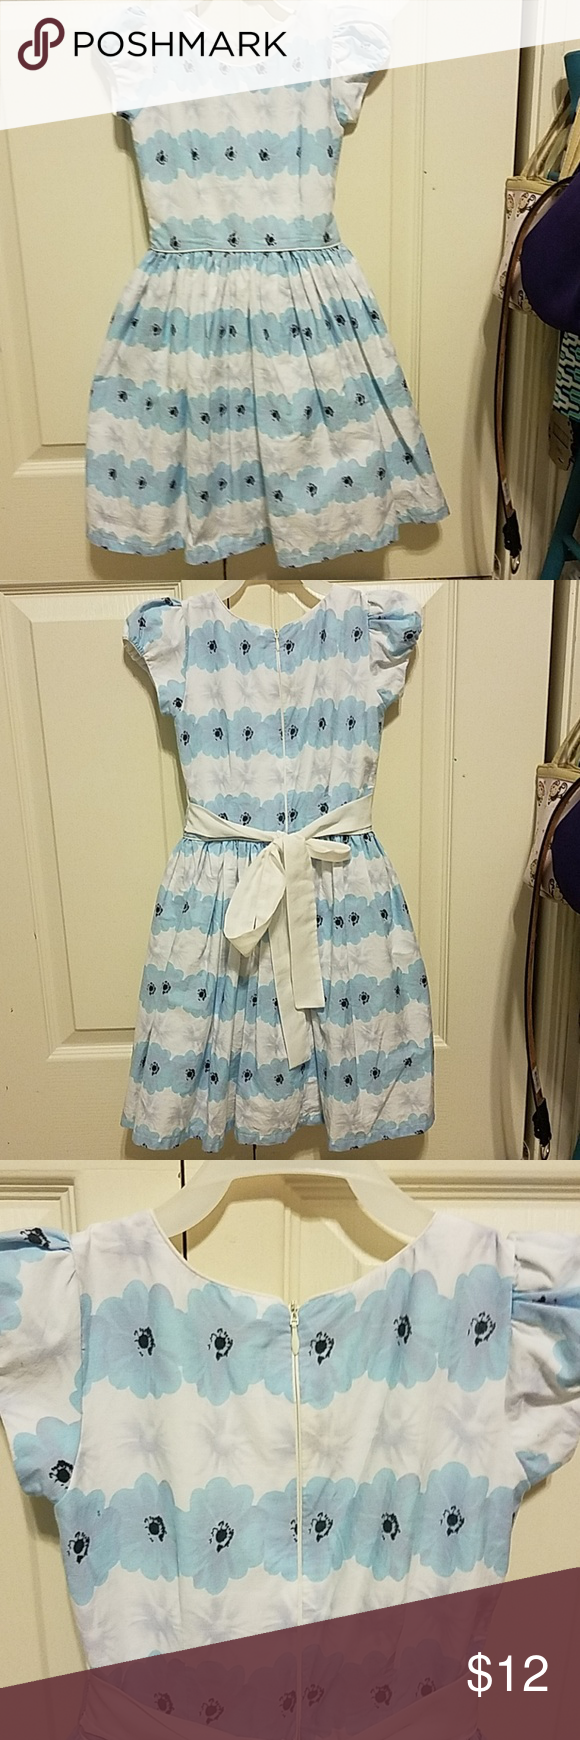 4t Light Blue And White Dress 4t White Light Blue And Lavender Colored Flowers Dress Bow Ties In The Back Blue And White Dress Little Miss Dress White Dress [ 1740 x 580 Pixel ]